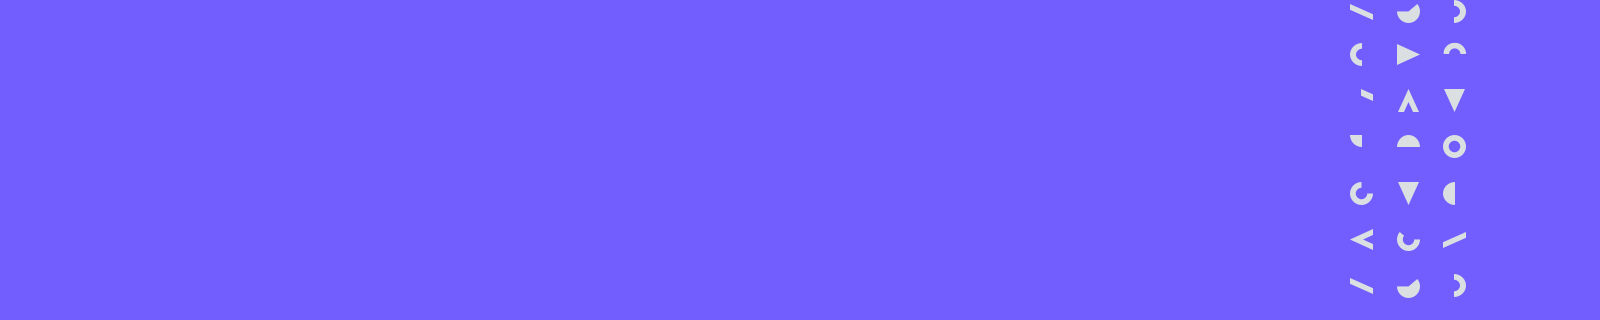 purple-marquee-short-1-1600x320